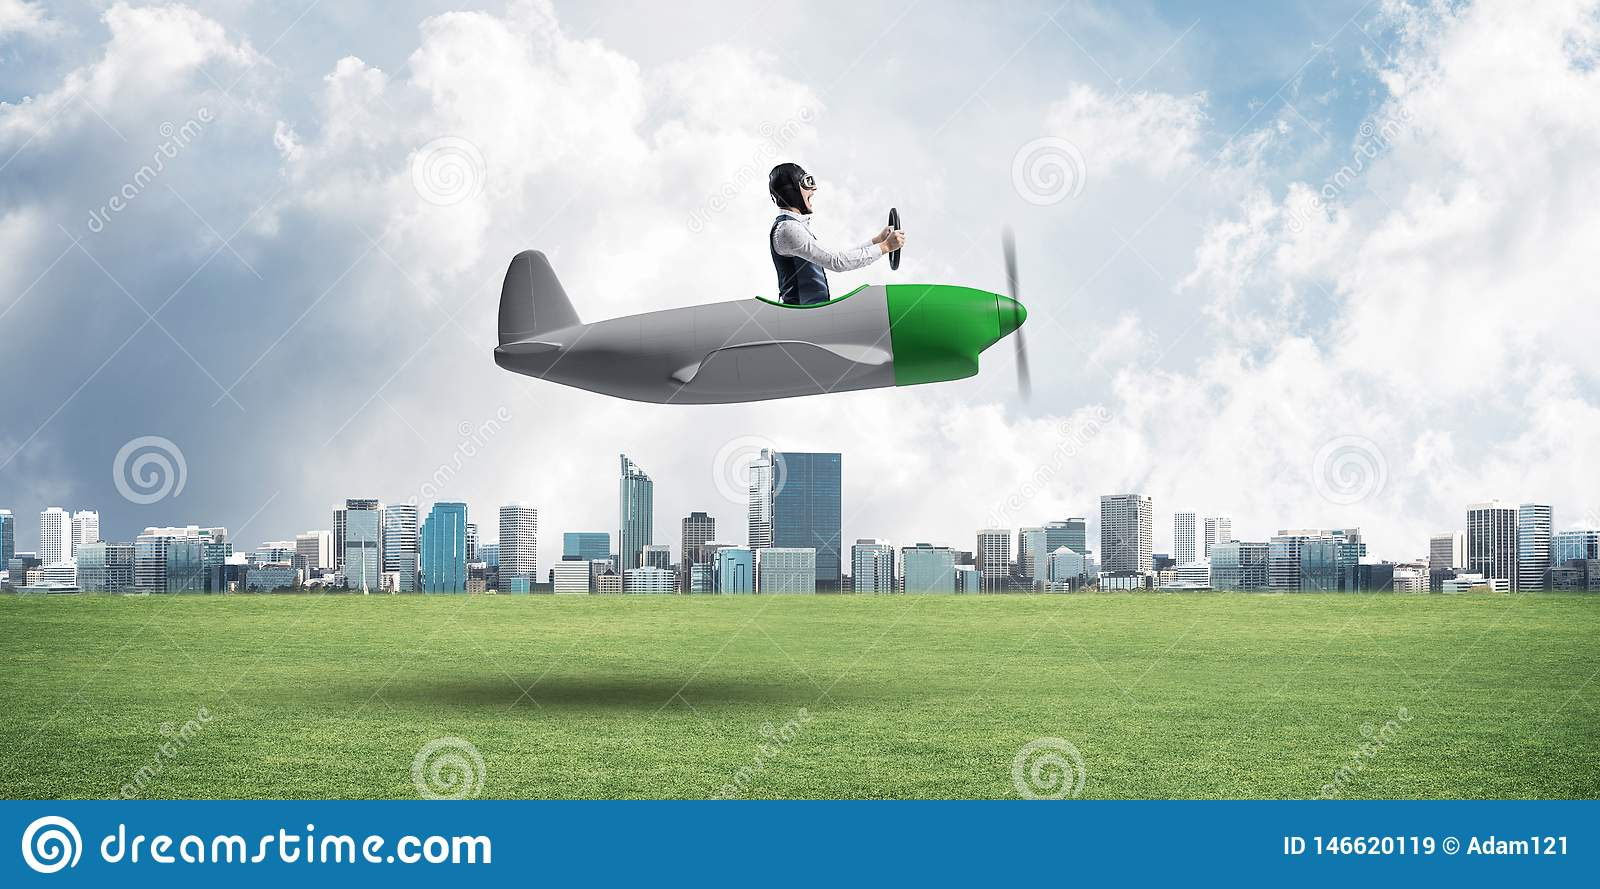 Young aviator driving small propeller plane